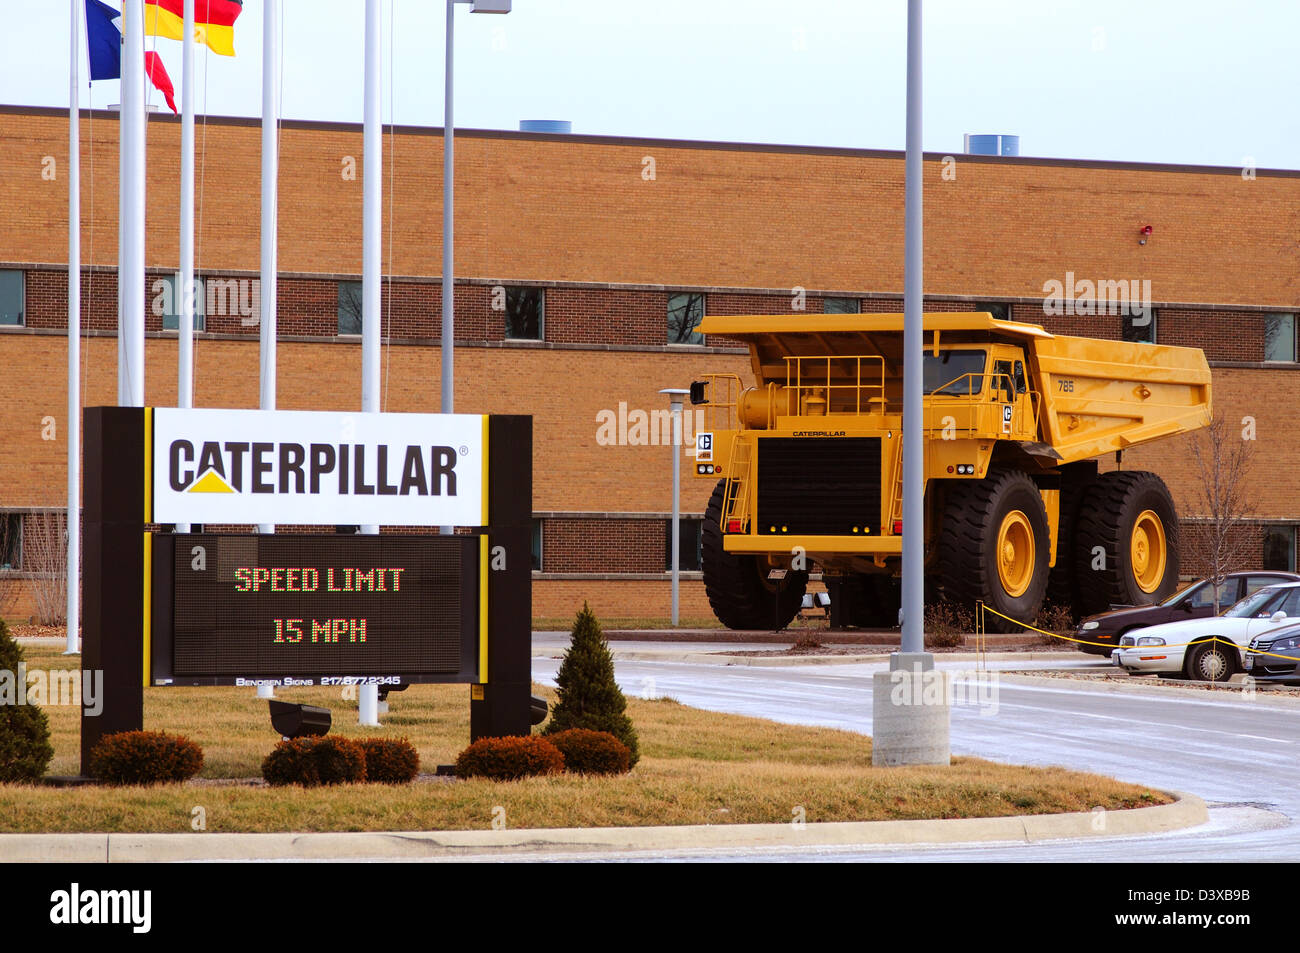 Caterpillar 785 off road mining truck at the Decatur, IL manufacturing plant - Stock Image